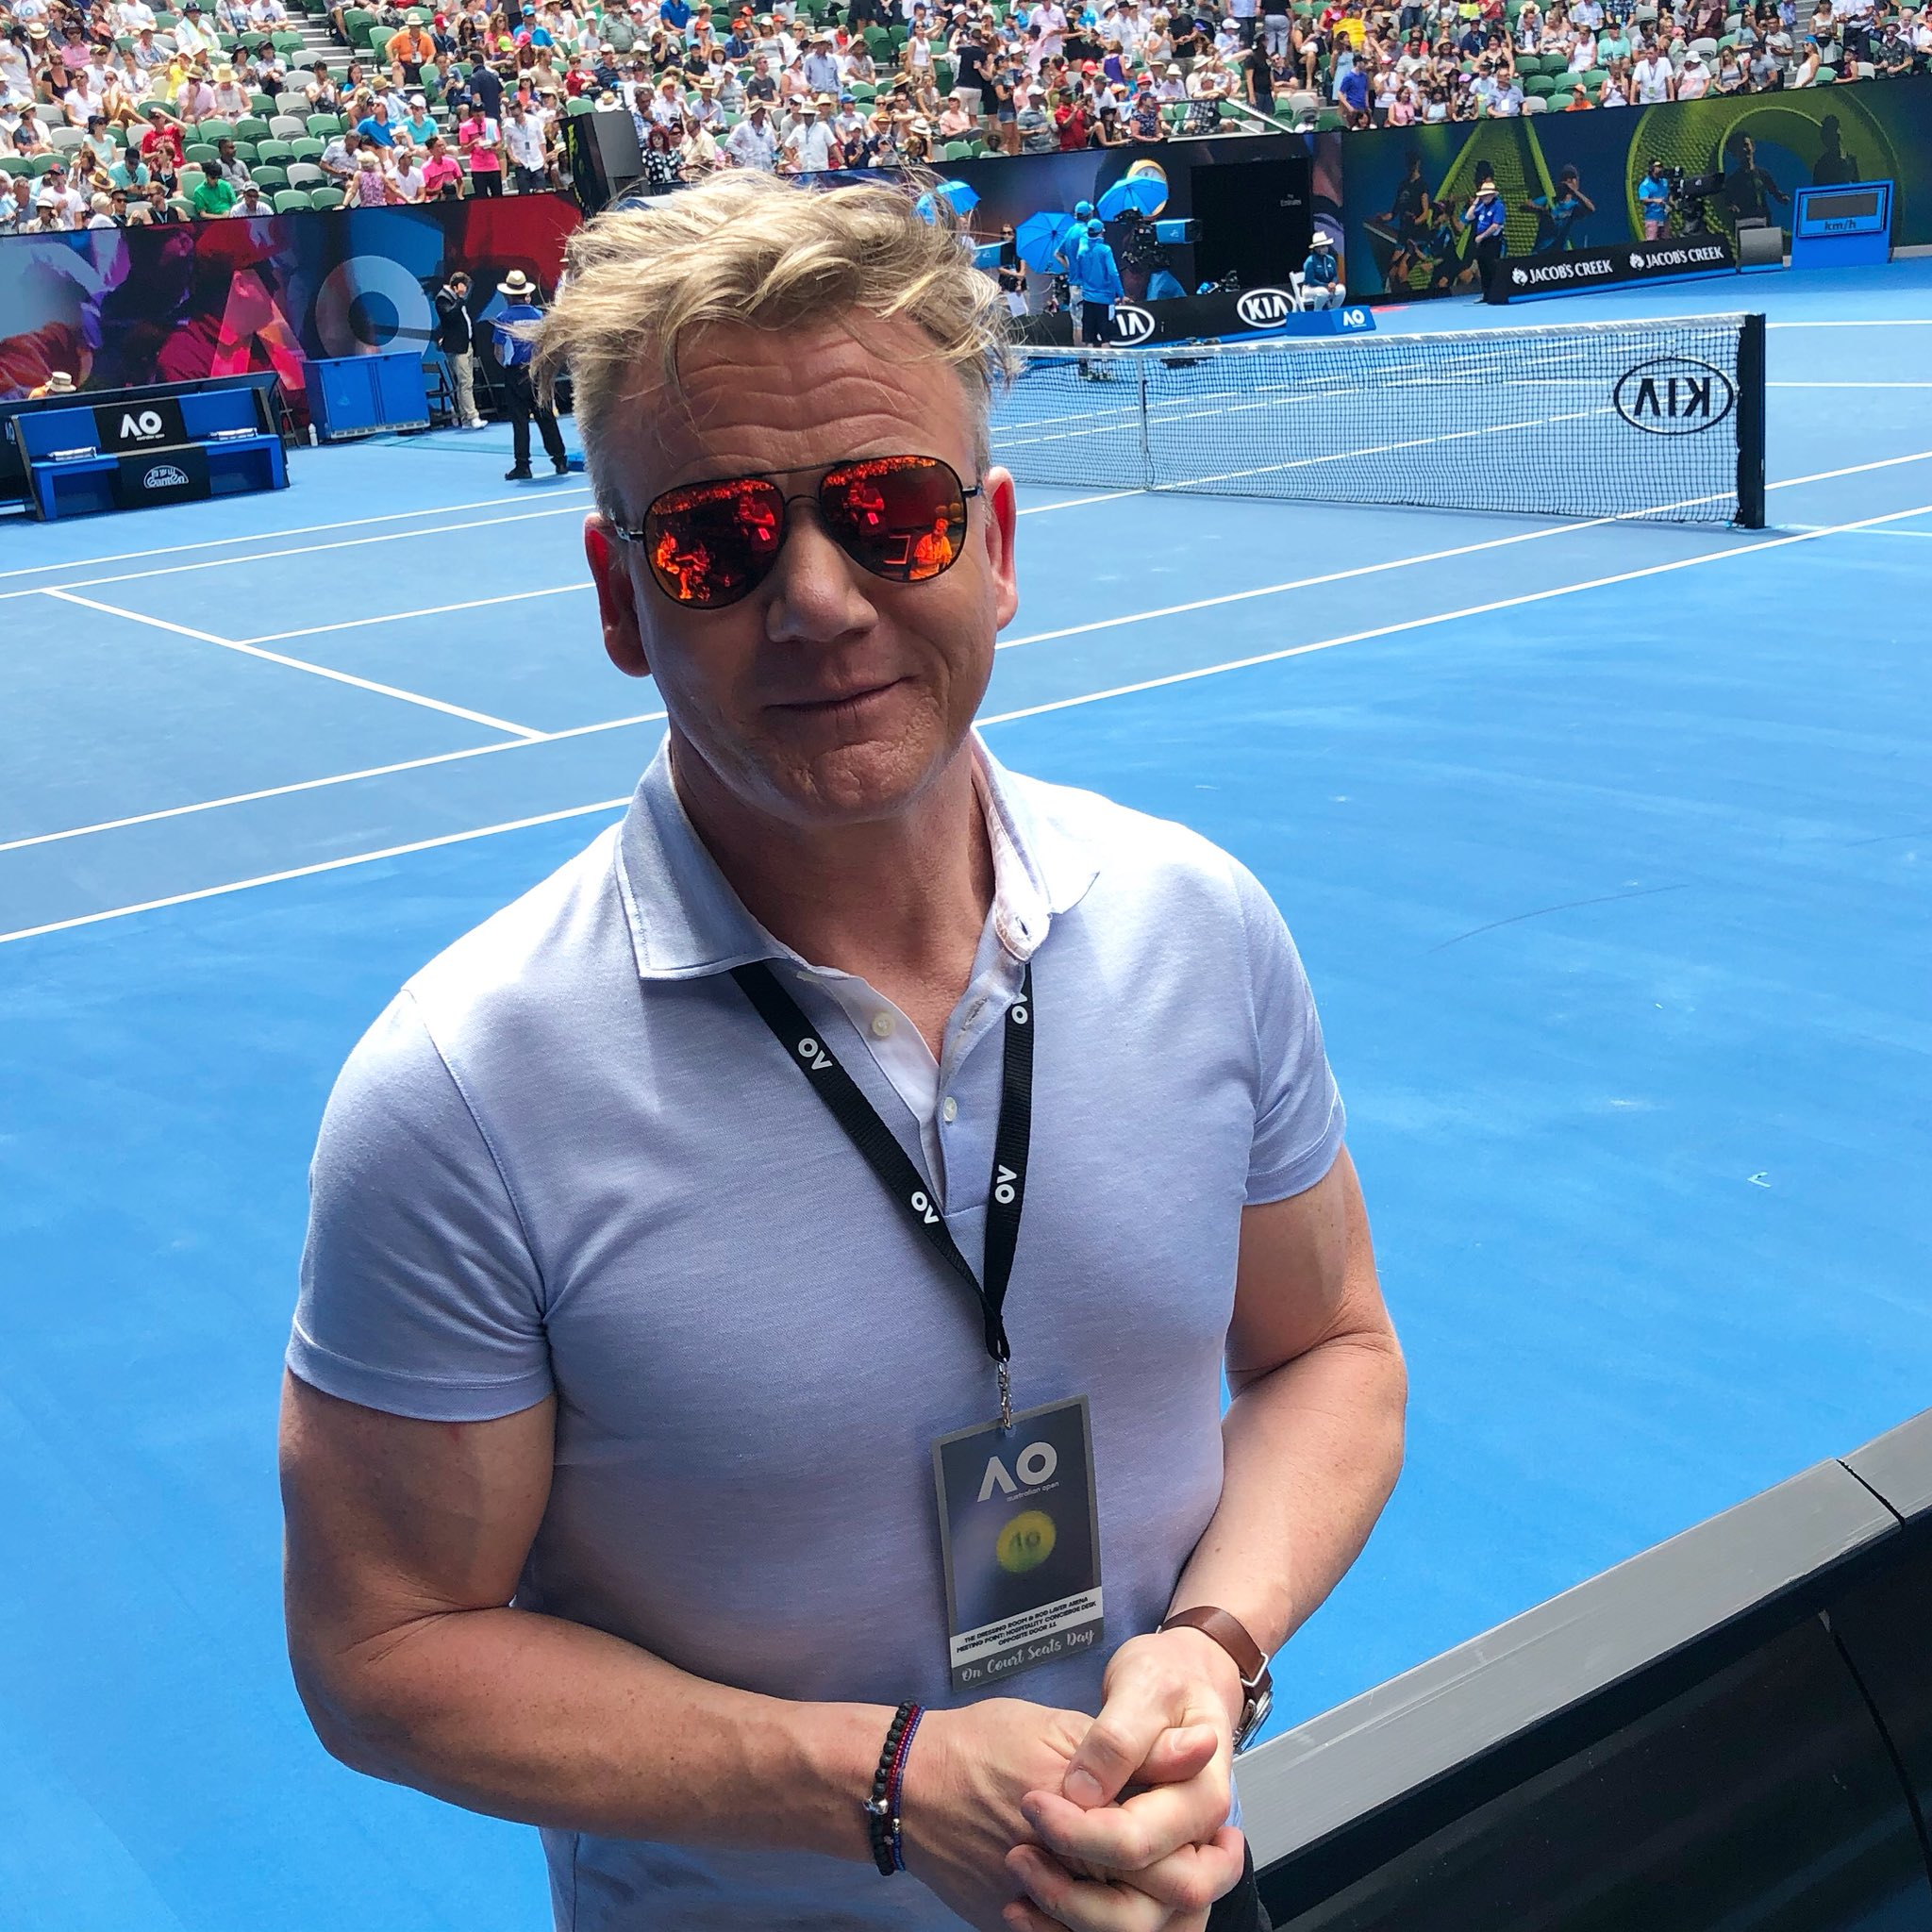 gordon ramsay on twitter excited to see an amazing match today at the australianopen. Black Bedroom Furniture Sets. Home Design Ideas